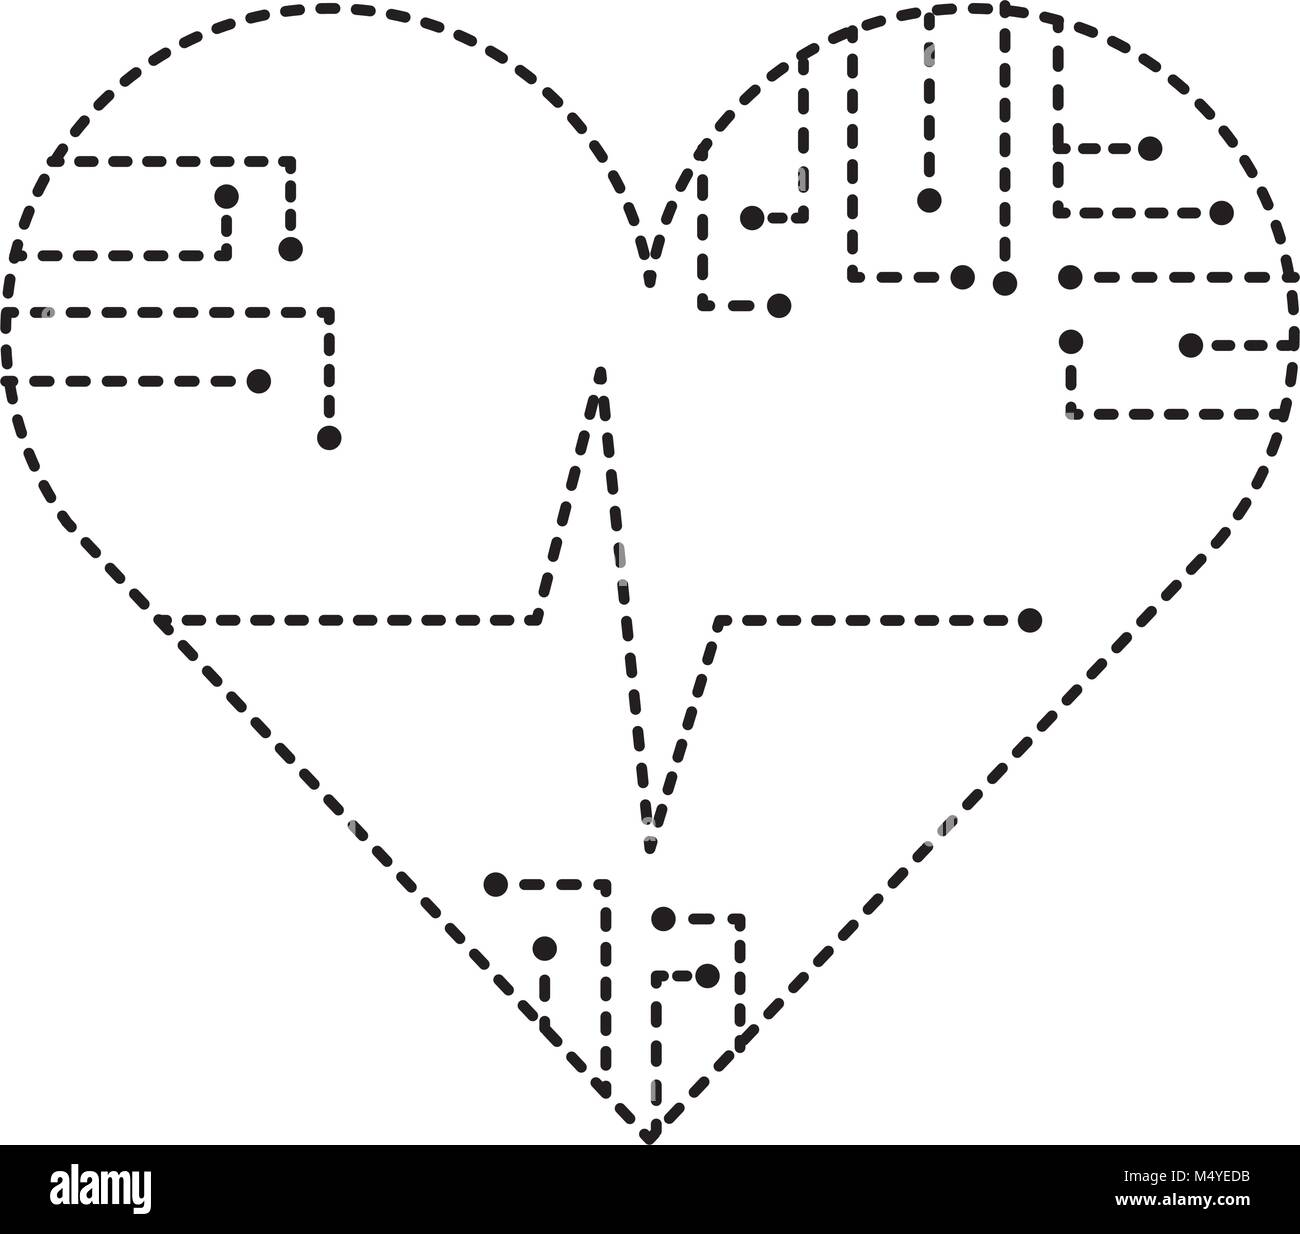 Heart Rate Line Black And White Stock Photos Images Alamy Monitor Schematic Circuit Technology Medical Image